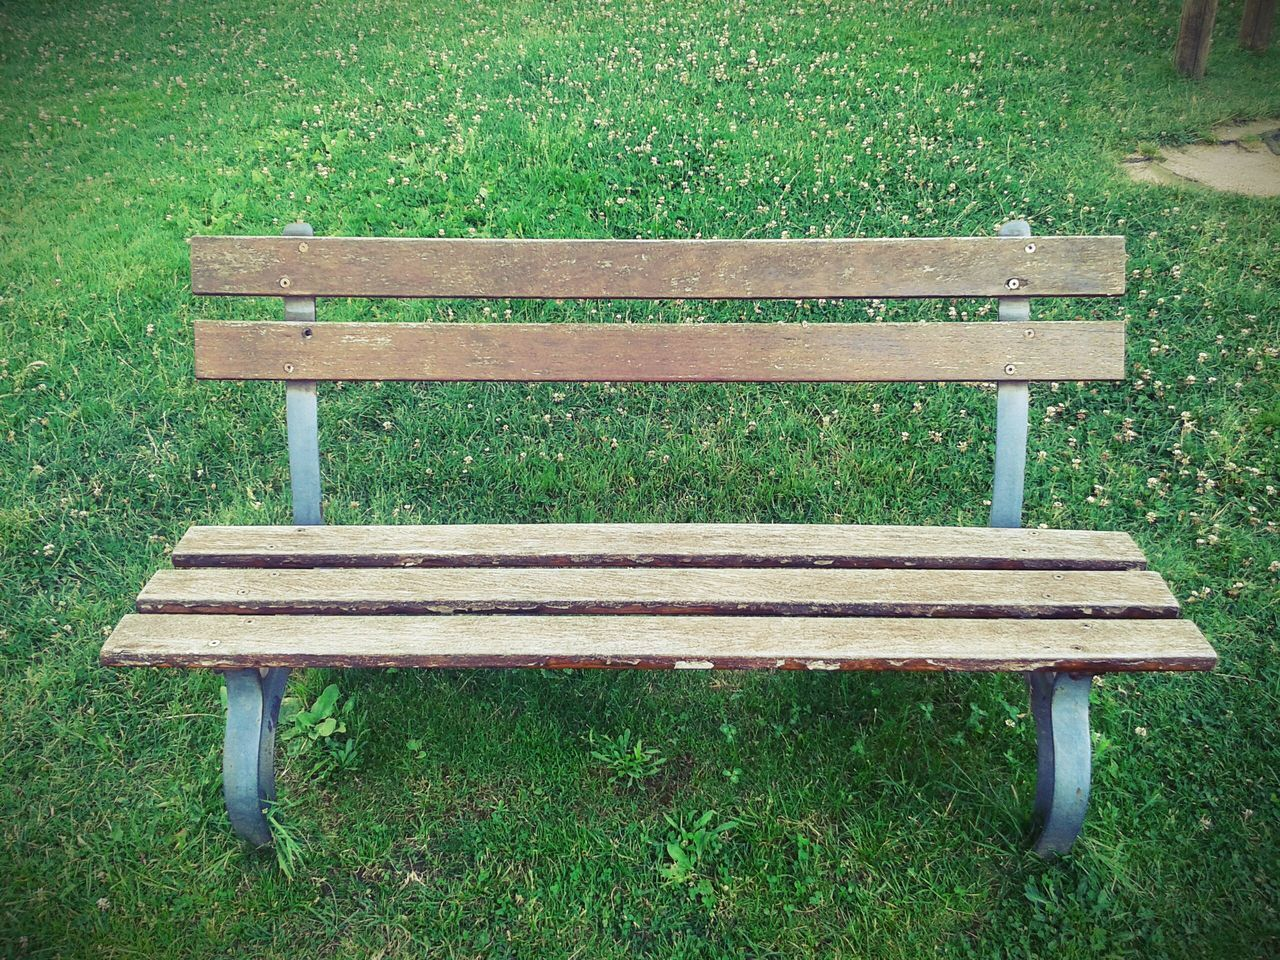 bench, grass, empty, absence, park - man made space, relaxation, seat, green color, outdoors, day, picnic table, wood - material, past, nature, no people, grassland